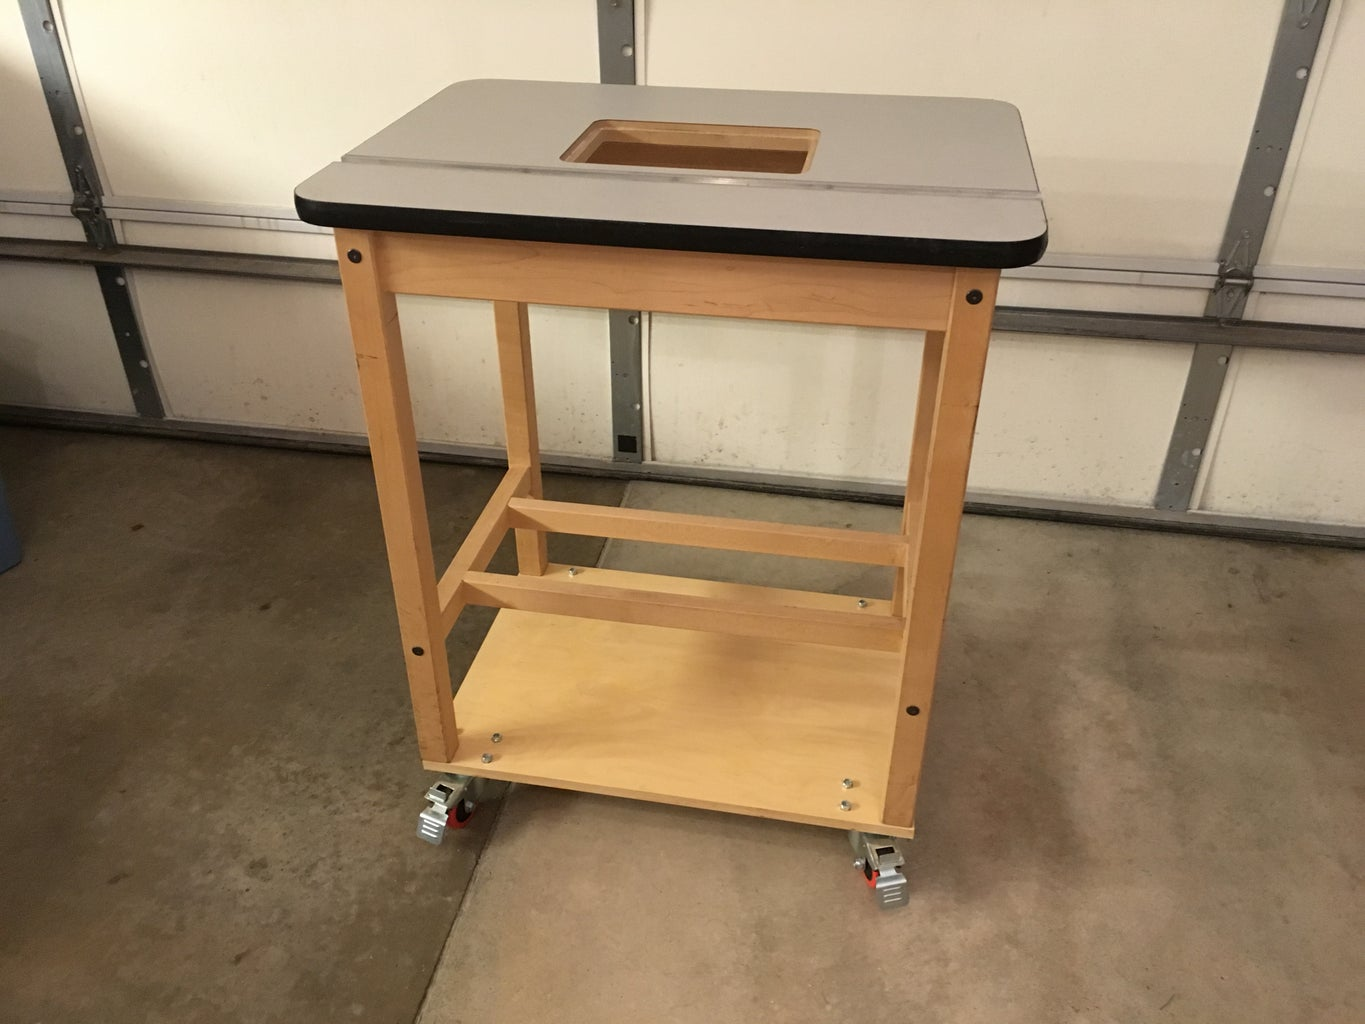 Add Casters to the Table